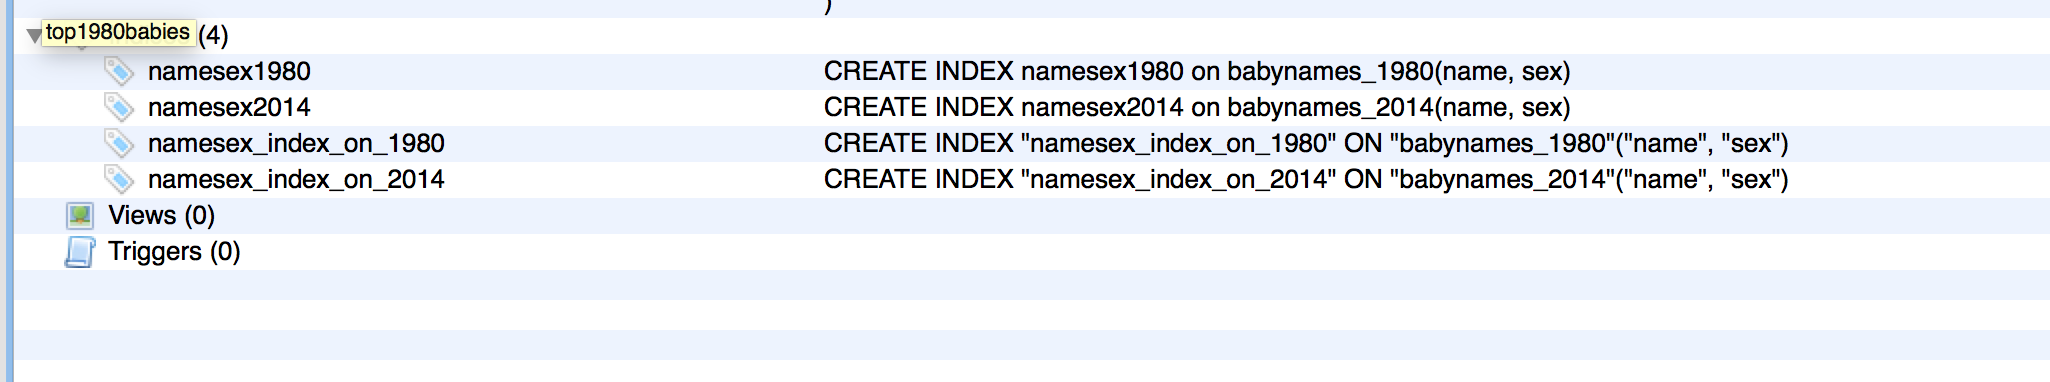 Creating Tables and Importing Data for Baby Names | Public